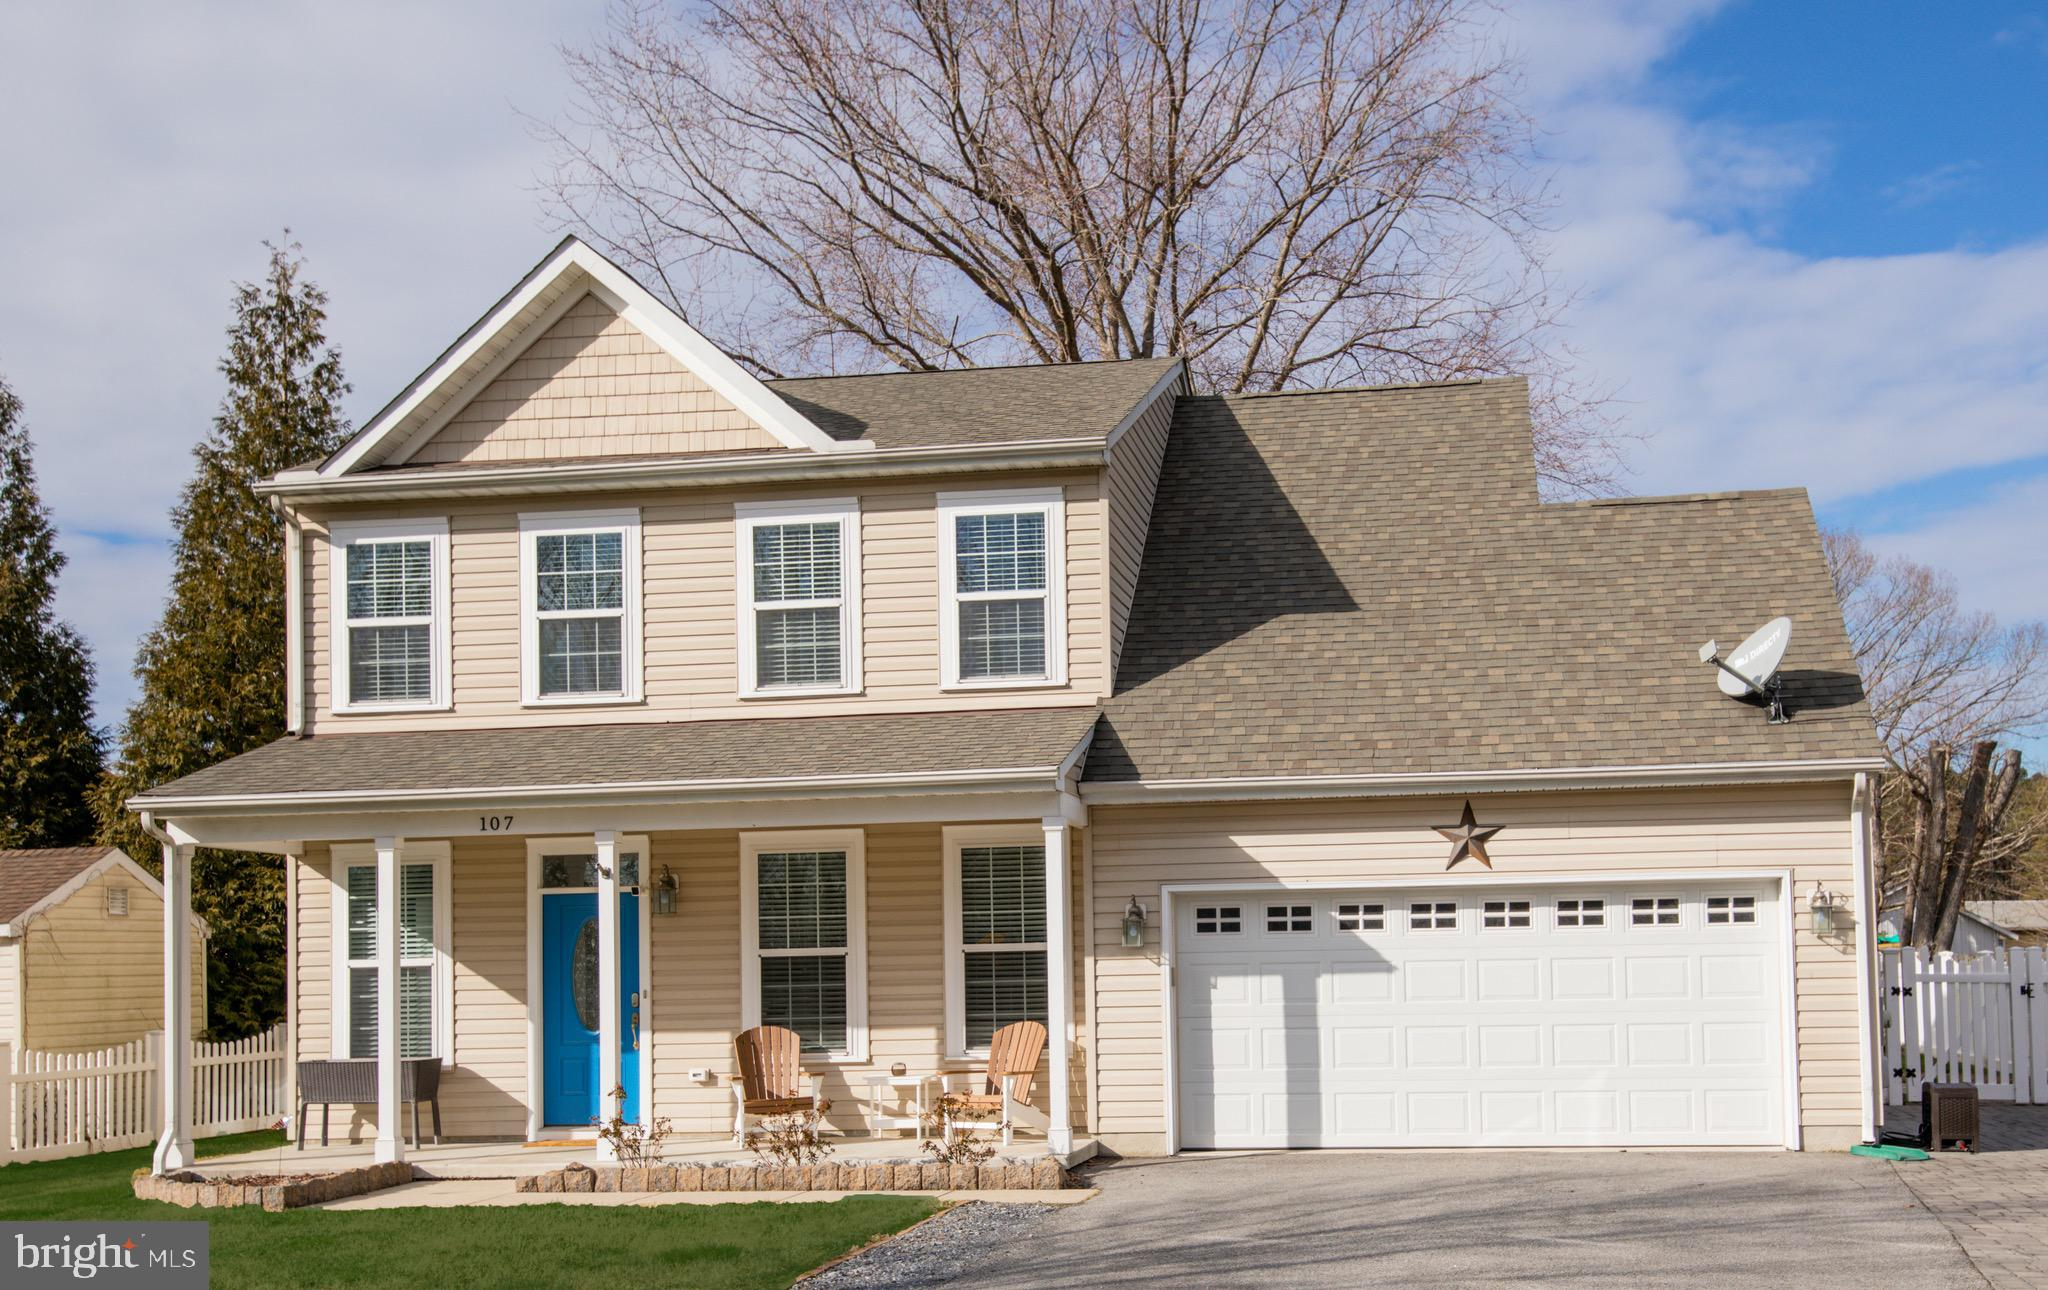 As you pull up the inviting front porch beckons you to come inside to this turnkey home.  Upon enter